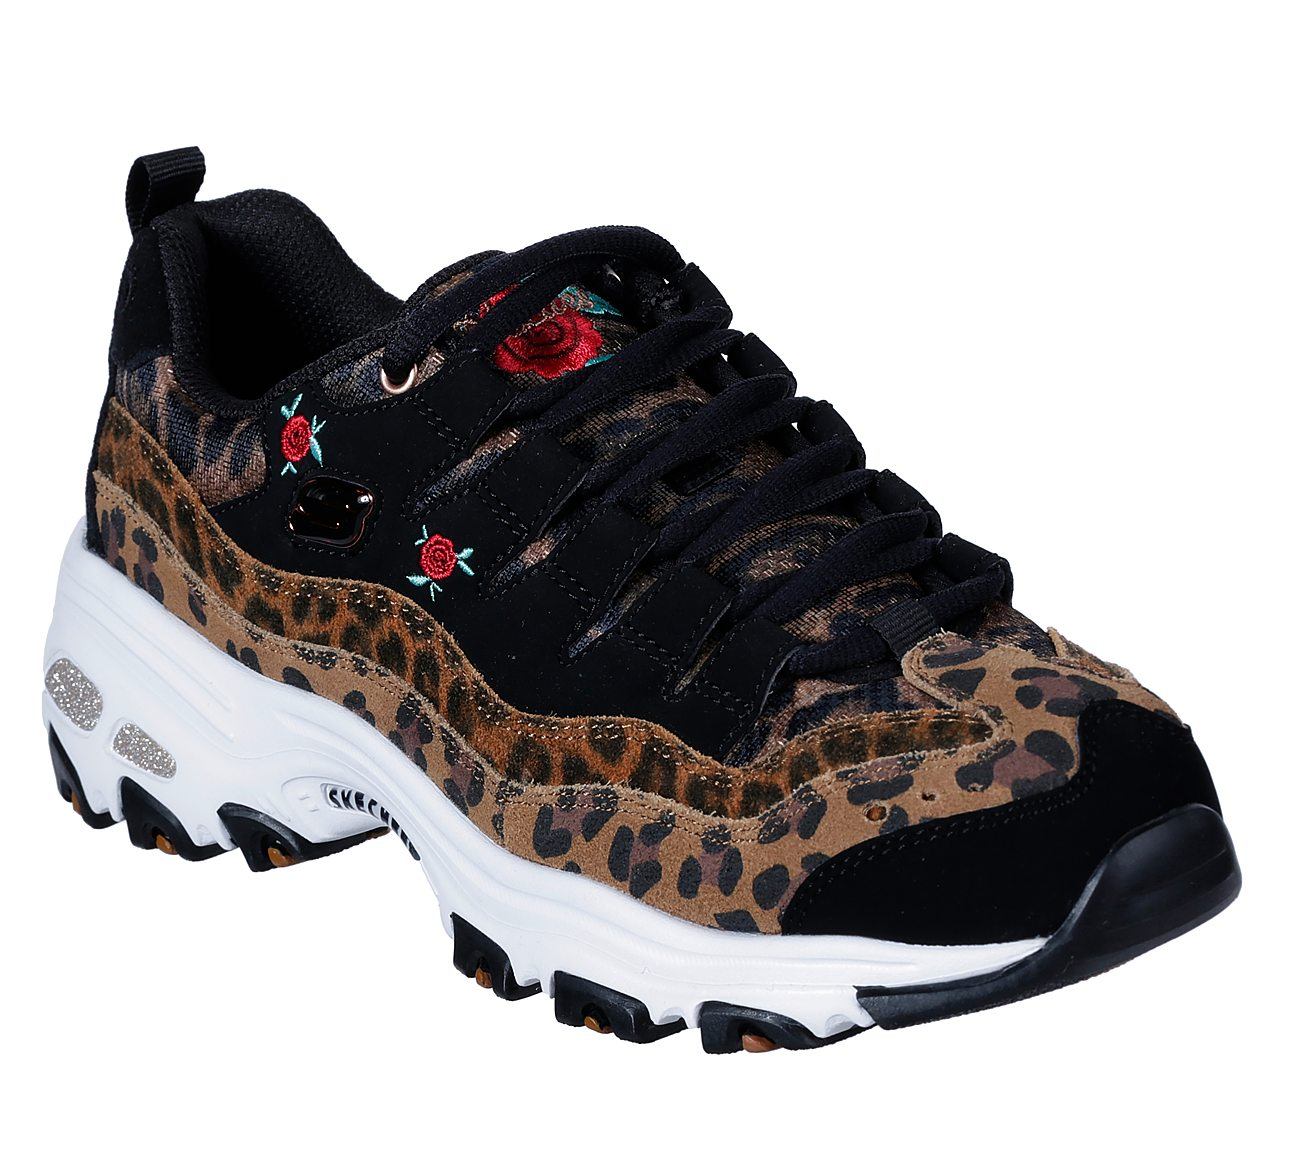 f70a28a02333 Buy SKECHERS D Lites - Leopard Rose D Lites Shoes only  80.00